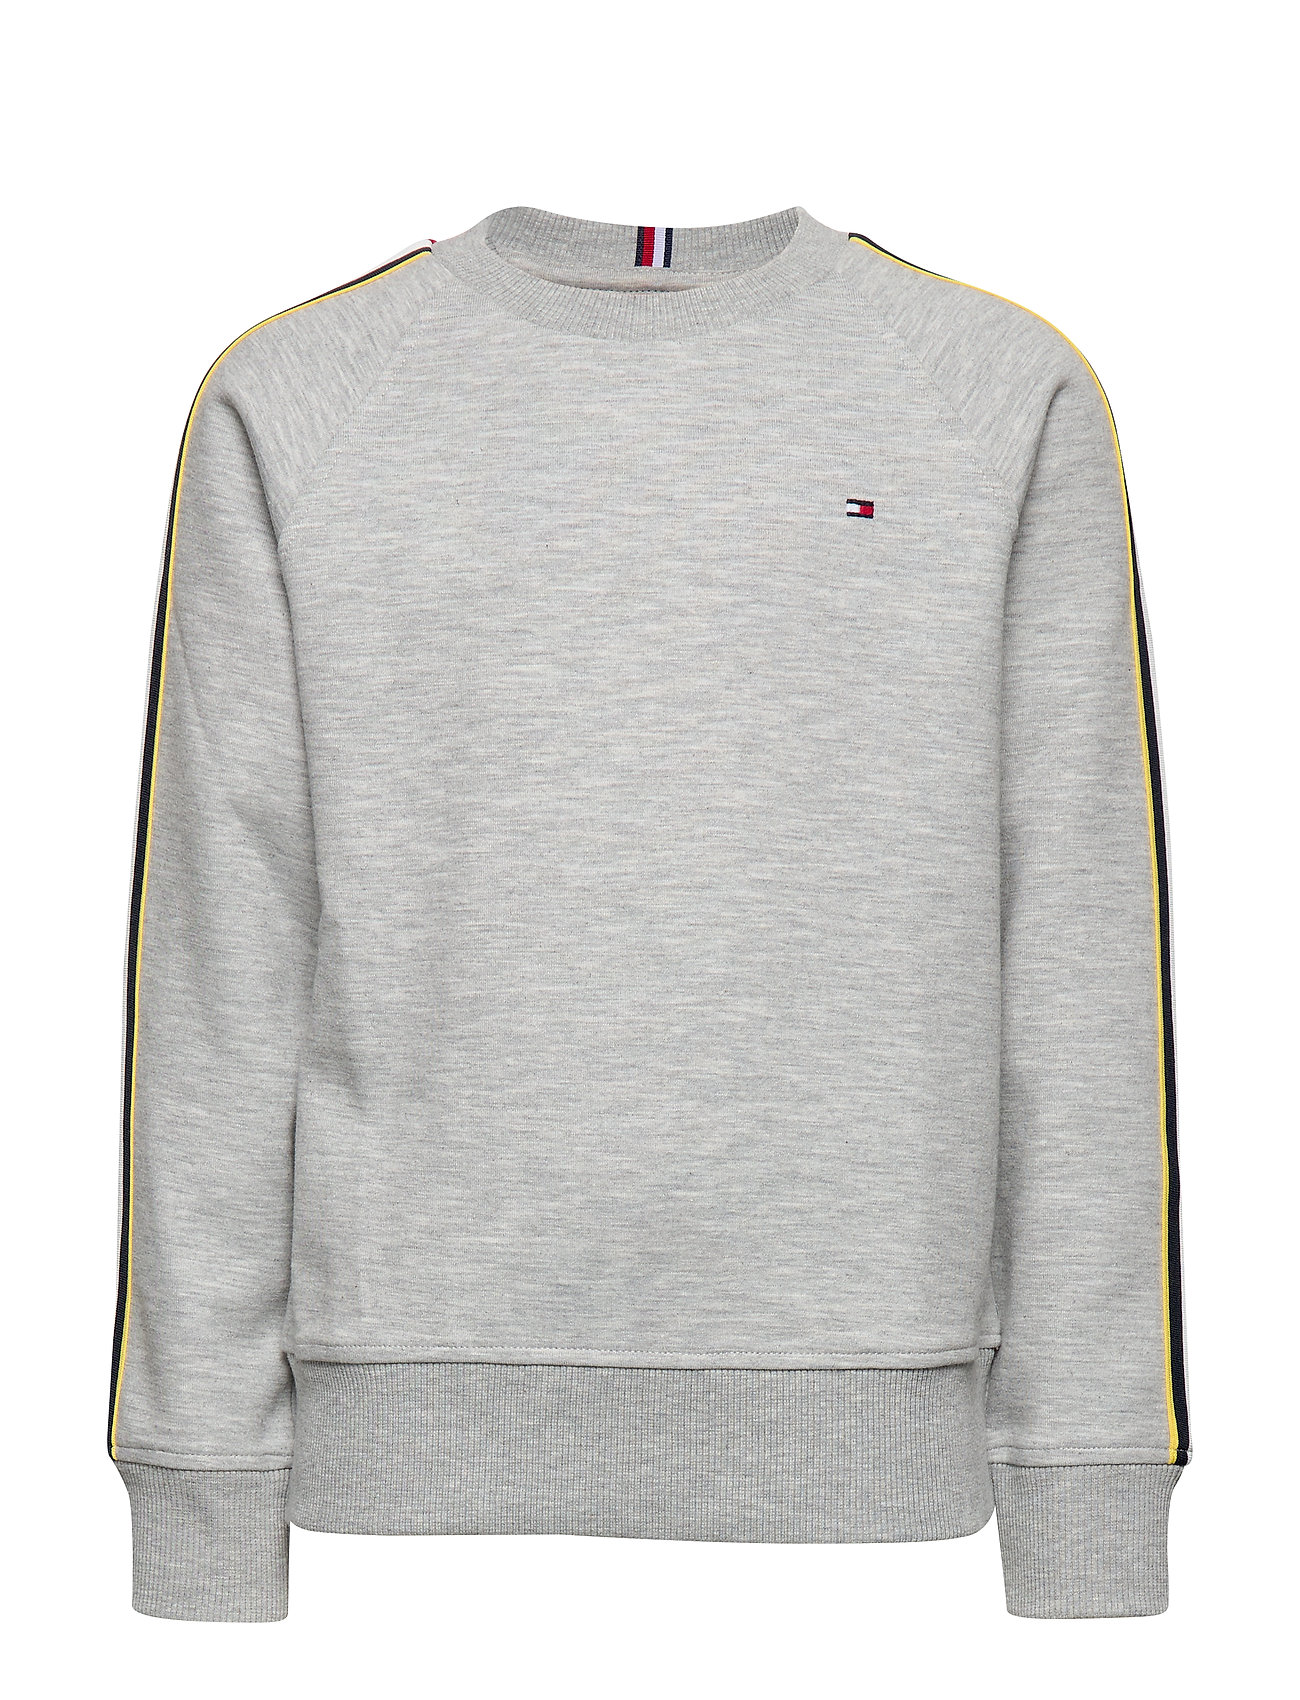 Tommy Hilfiger STRIPE INTERLOCK SWE - GREY HTR